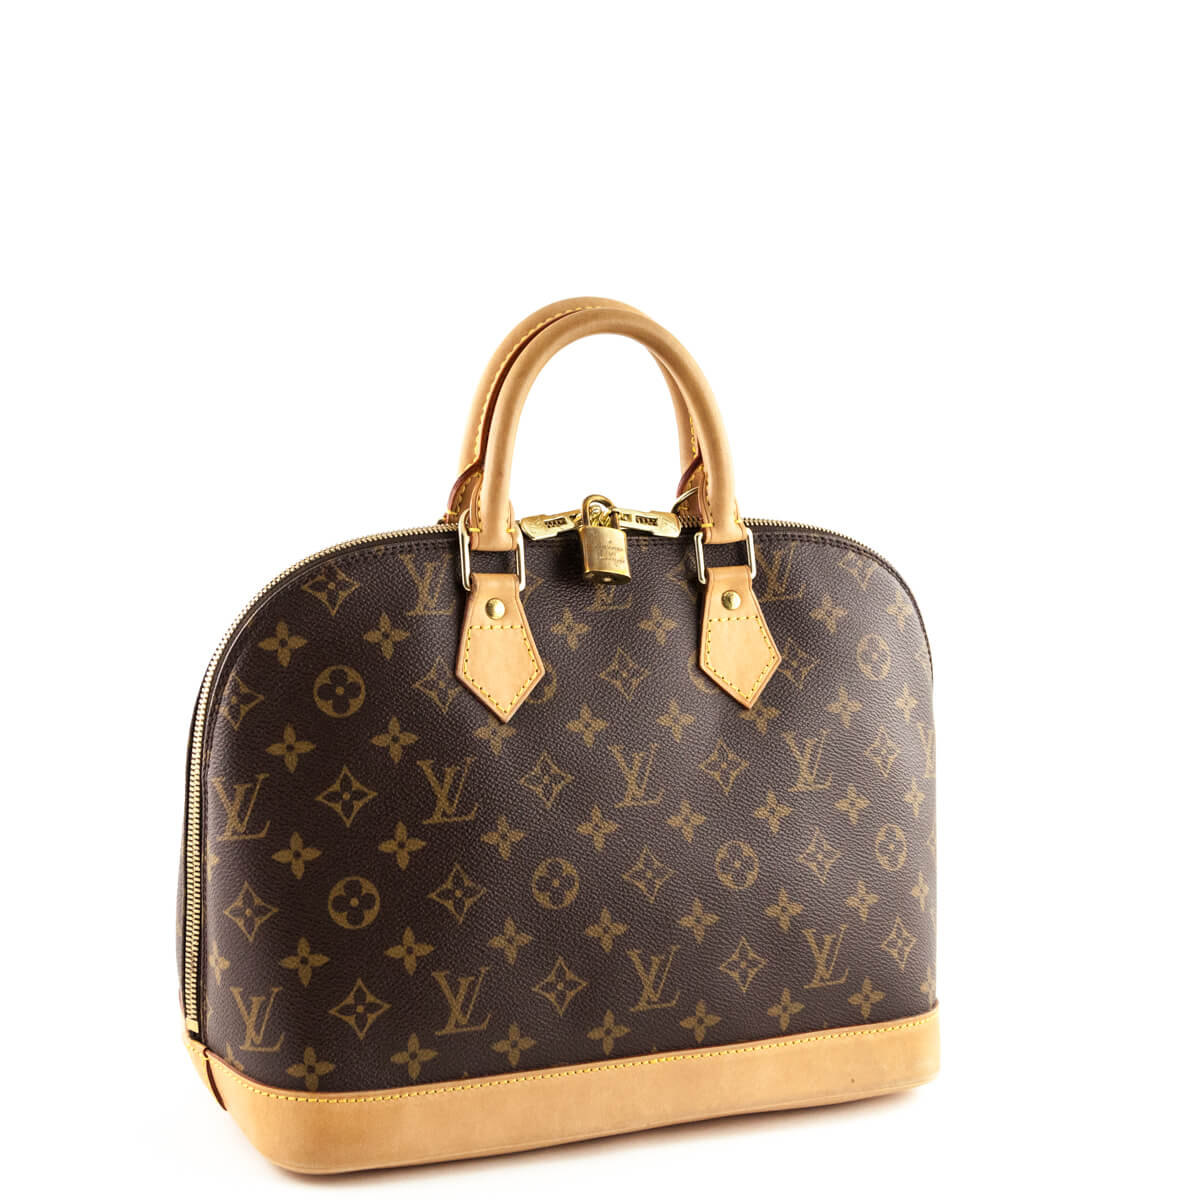 6ee949d2d0f4 ... Louis Vuitton Monogram Alma PM - LOVE that BAG - Preowned Authentic  Designer Handbags ...